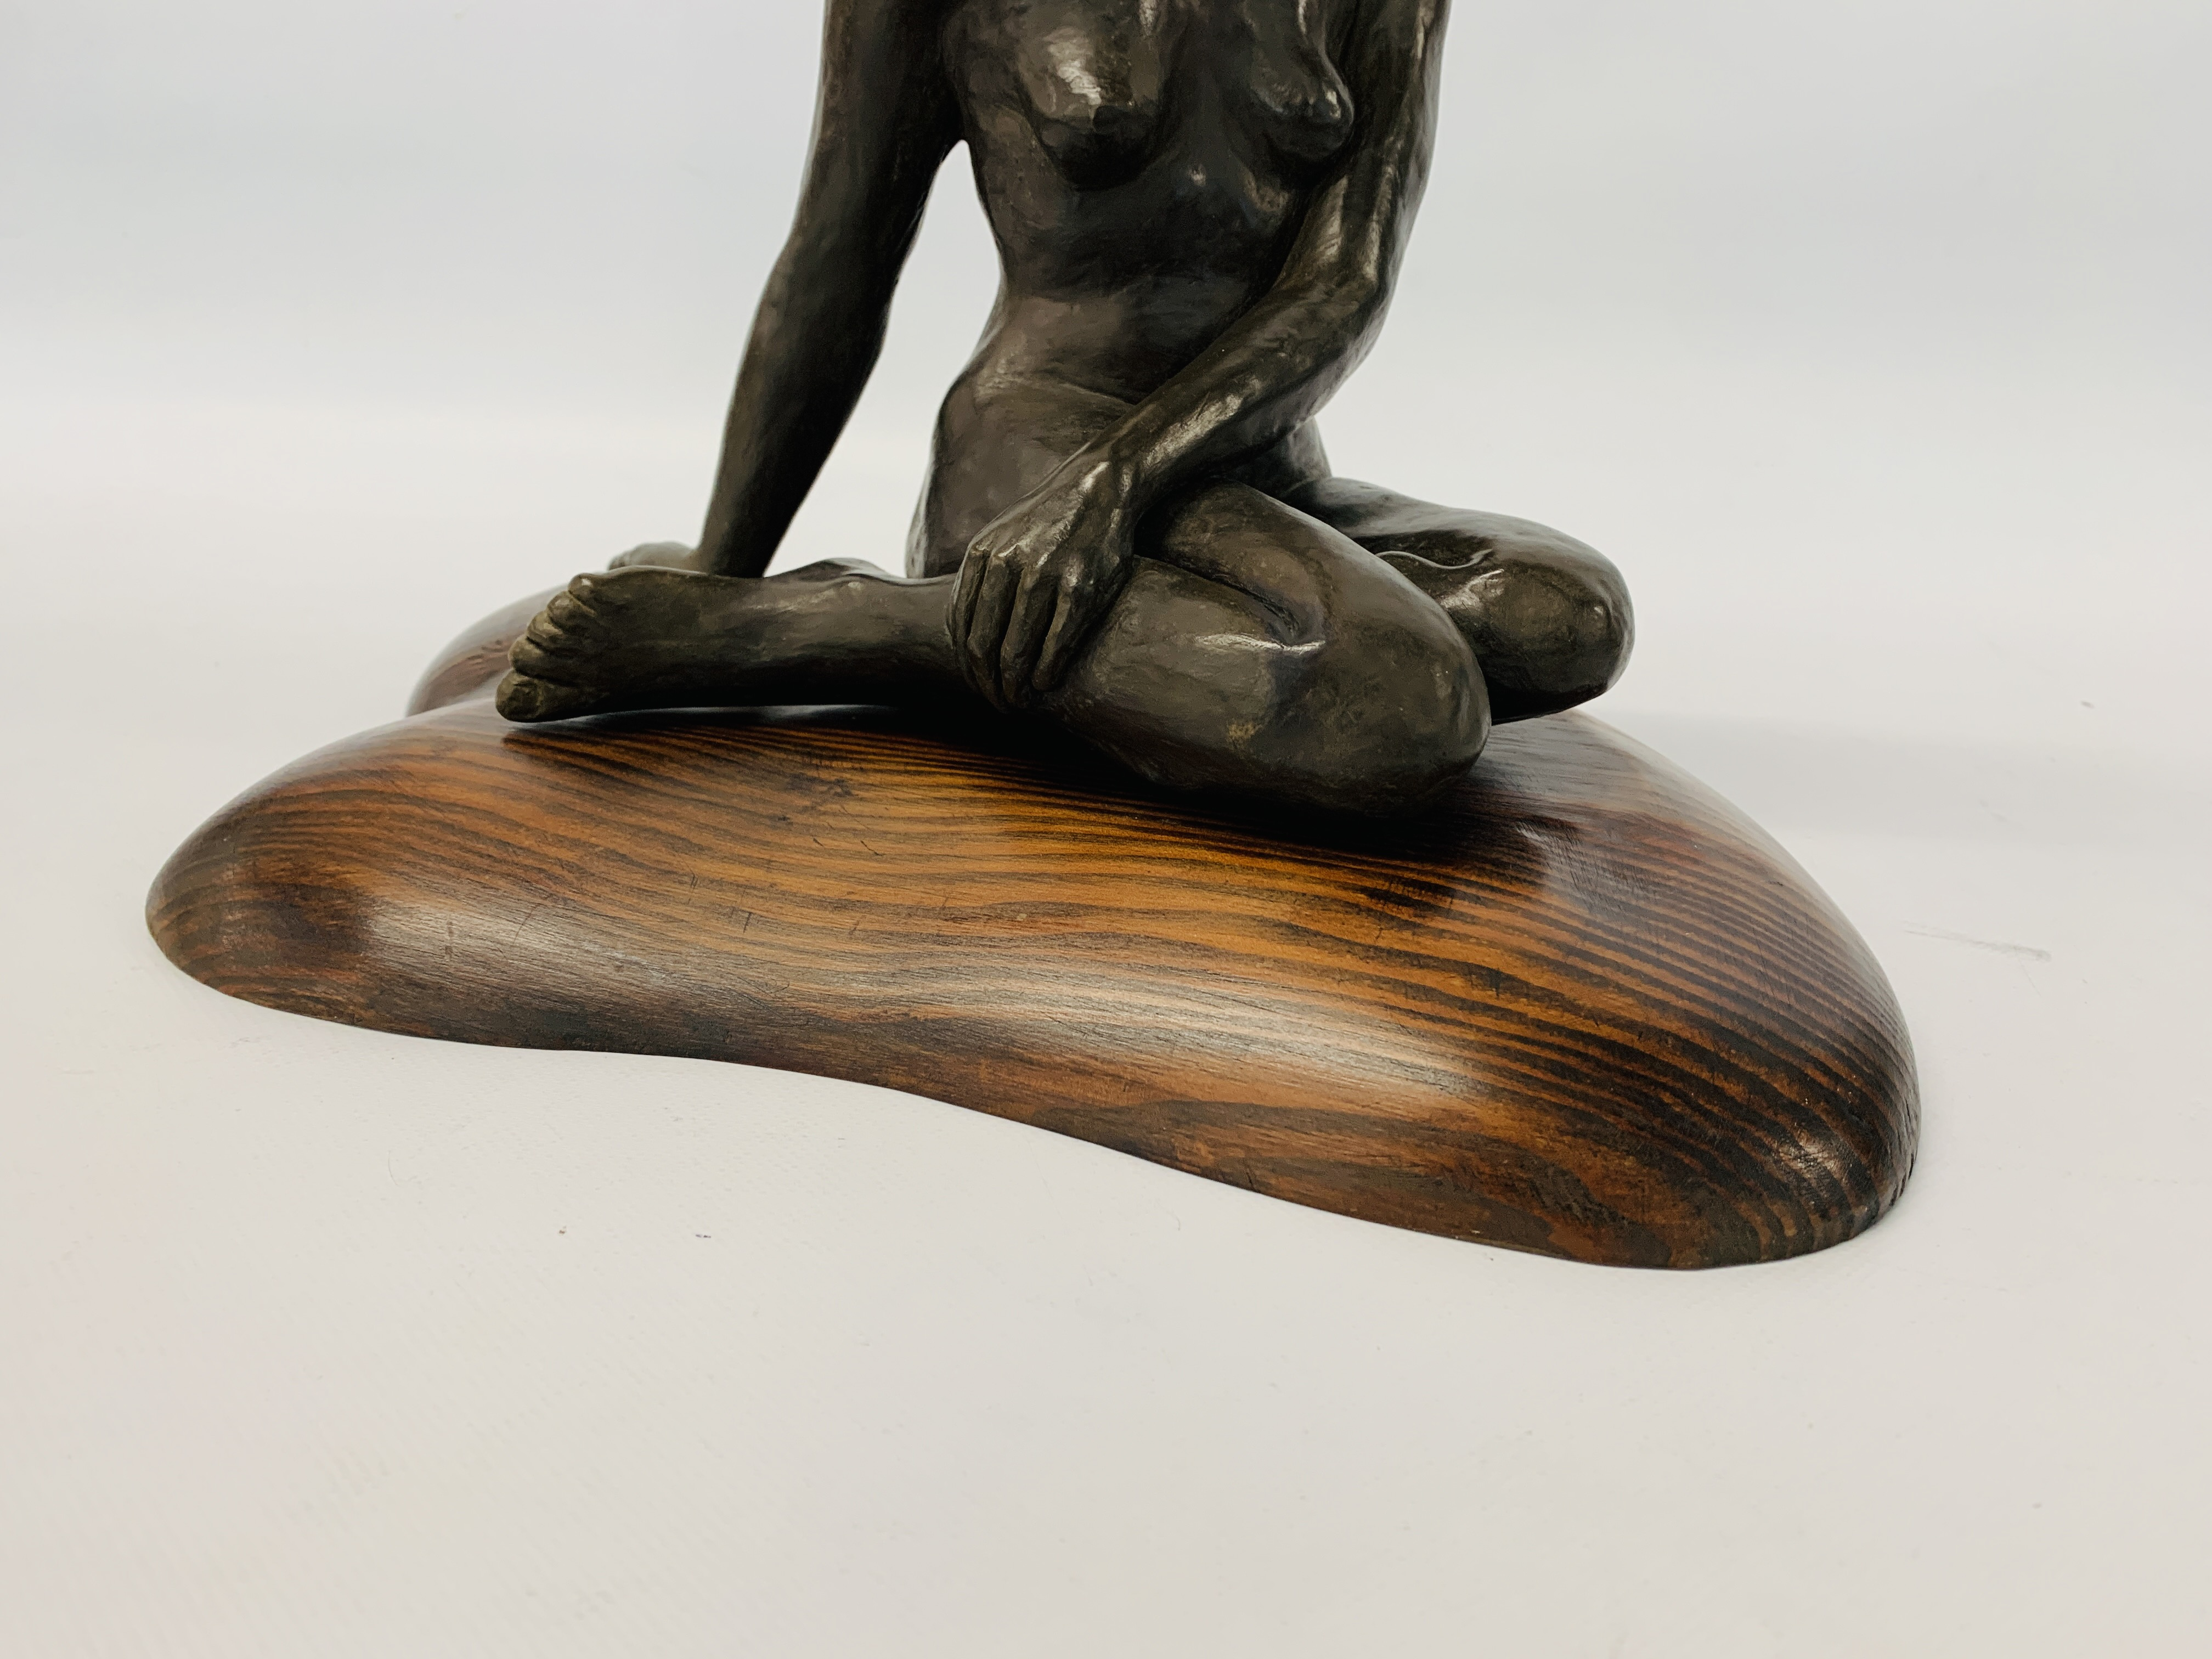 A BRONZED RESIN SCULPTURE OF A SEATED WOMAN BY SONIA DOBBS ON PINE BASE - HEIGHT 33.5 CM. - Image 4 of 8